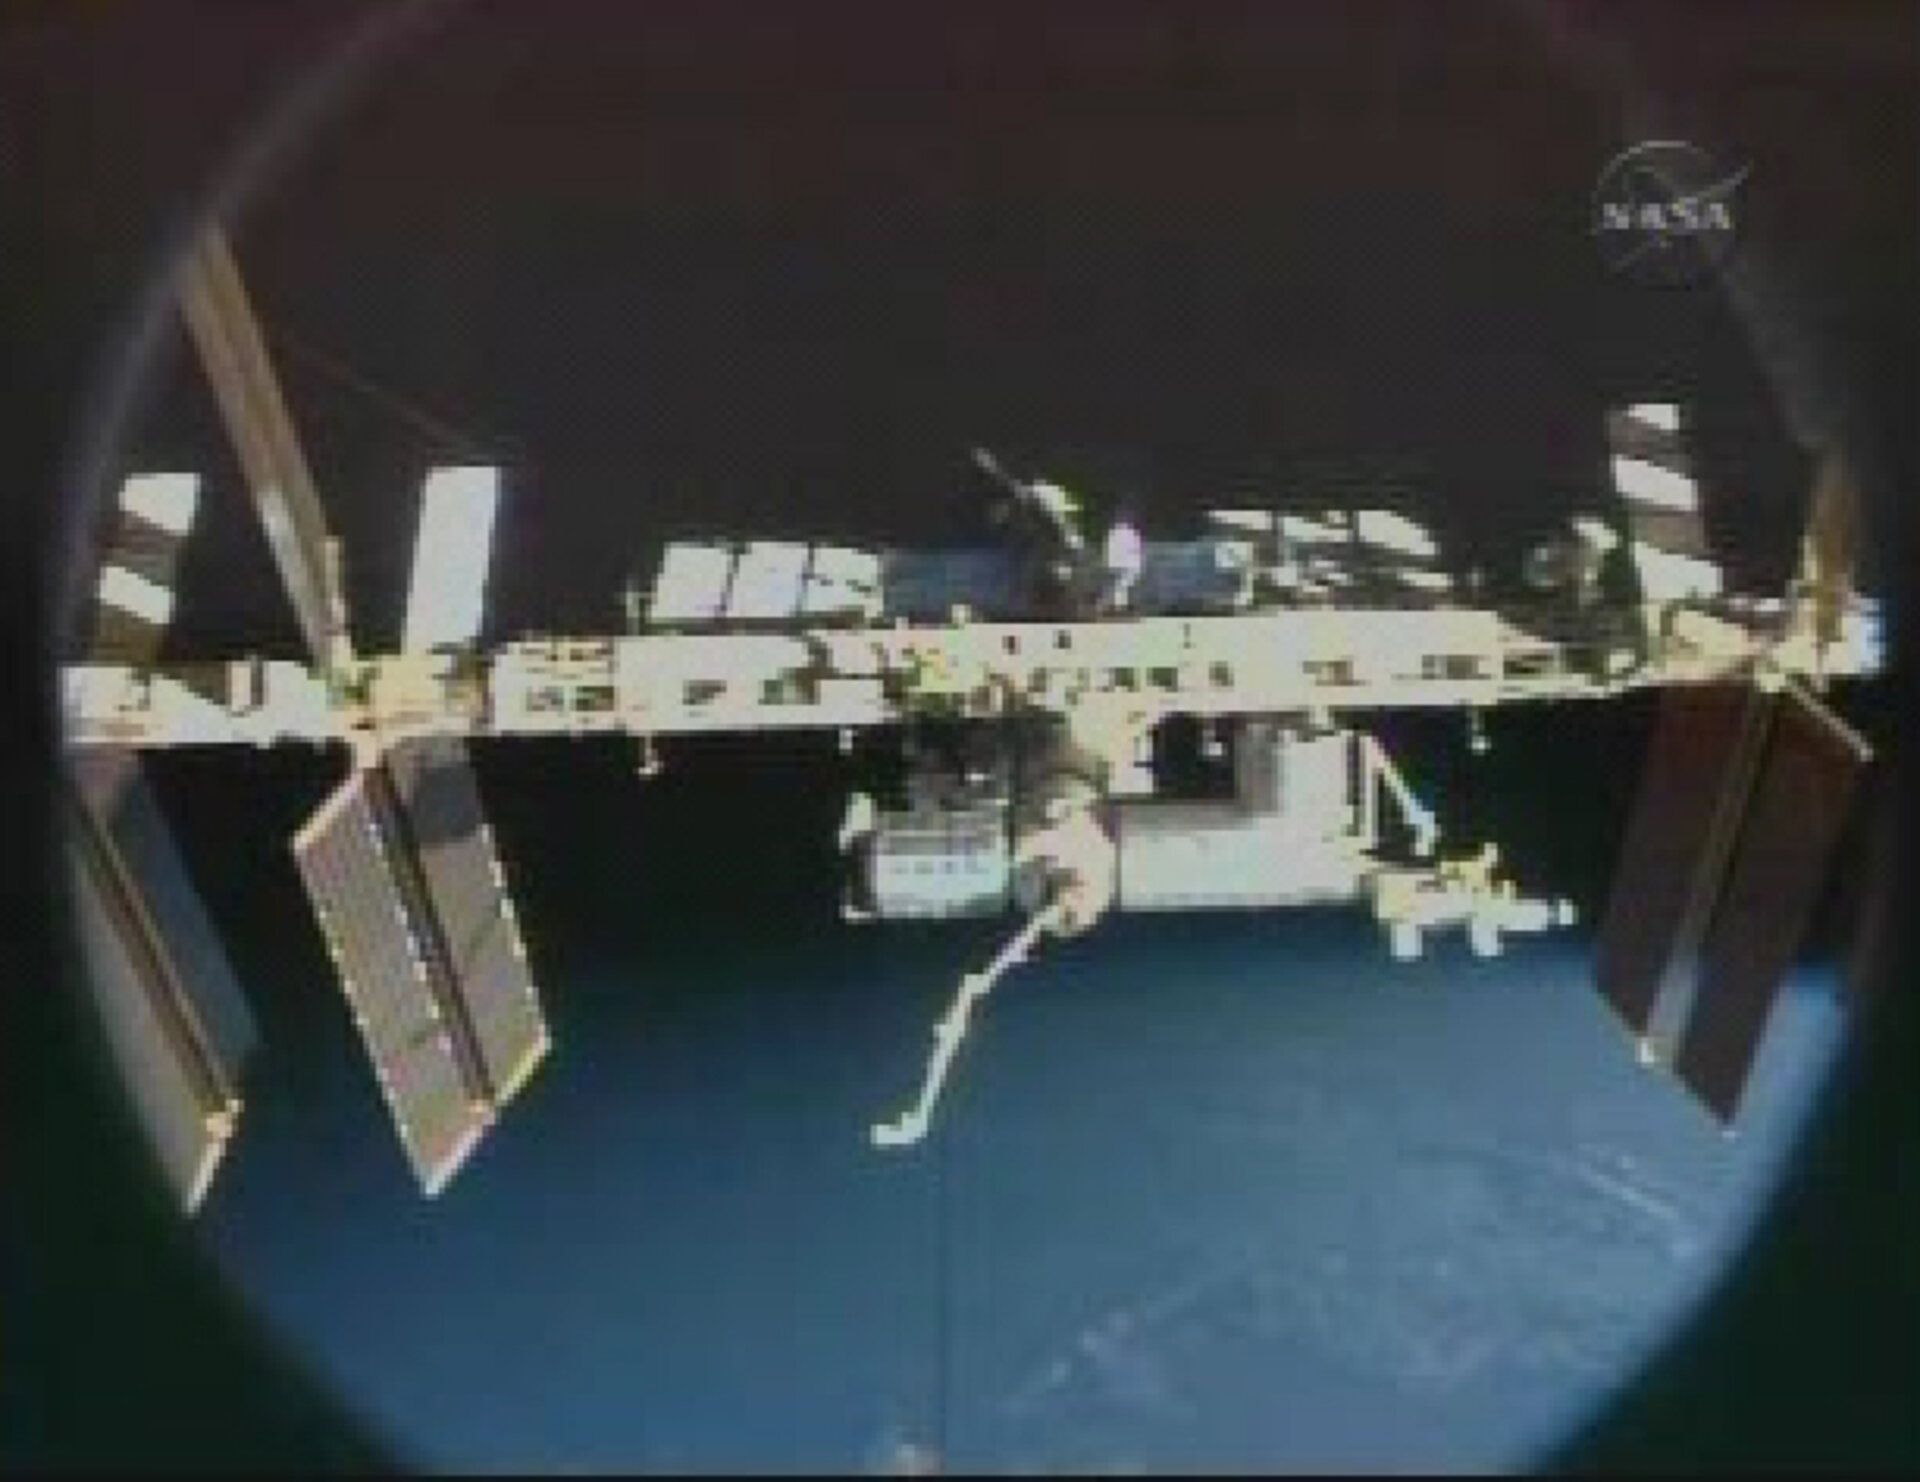 View of the International Space Station following undocking of Discovery